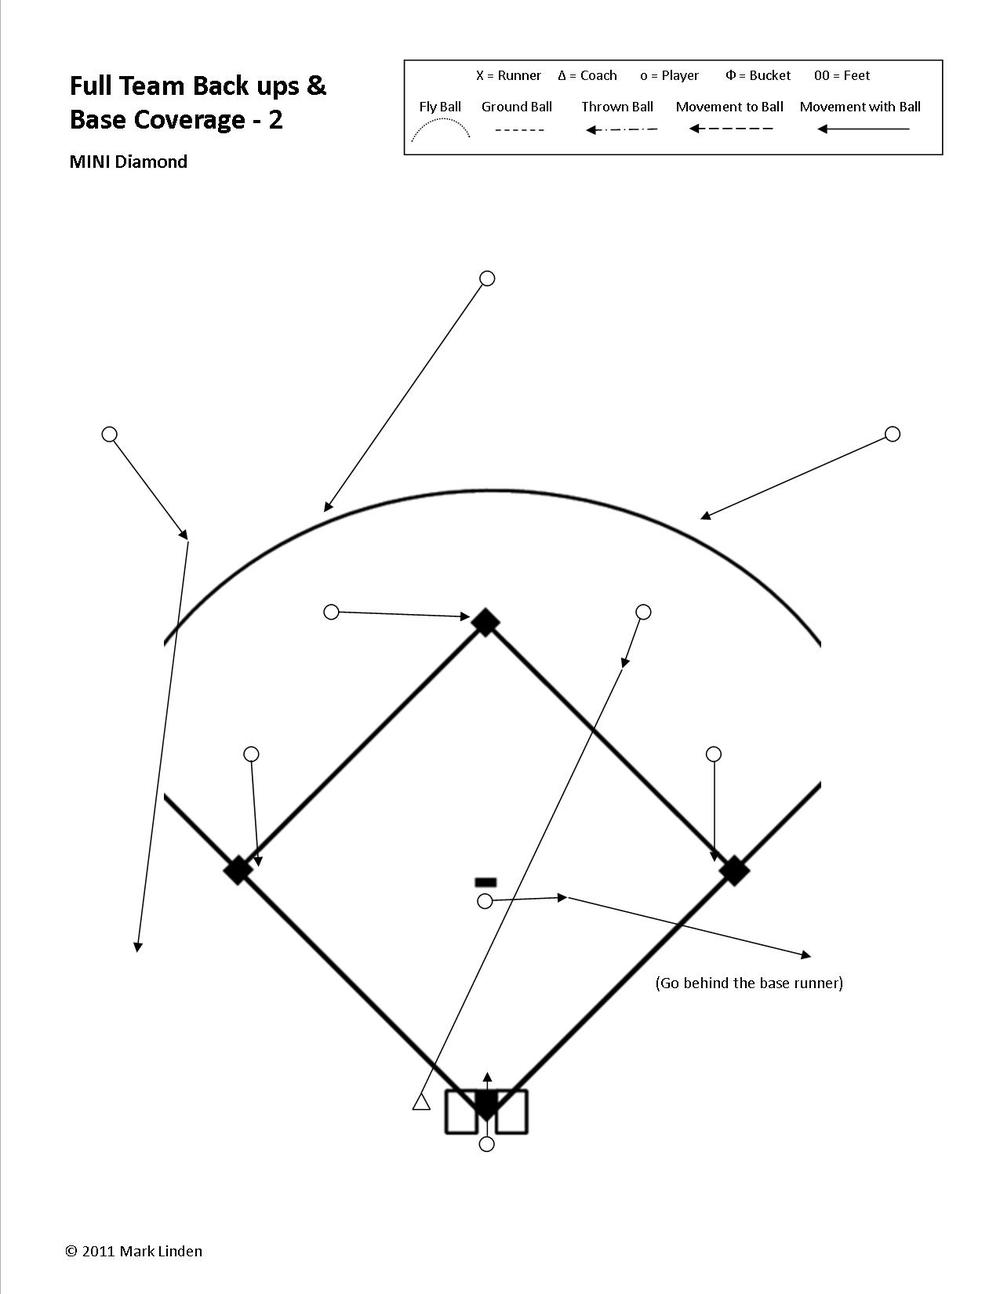 "In this example we have a ball hit to the Second Baseman. -->  The rule for the other three infielders is to cover a base.   -->  The rule for the CF and LF is that because they are not playing the ball they are backing up a base.  -->  The rule for the Pitcher is ""Always move towards the ball"".  In this case the Pitcher does not field the ball so they continue running in a straight line towards first base.  They see the base is covered, so go to their next responsibility of backing-up the base.  They need to be sure to go behind the base runner when crossing the base line. -->  The rule for the RIGHT FIELDER, because the ball is hit to an infielder in front of them, is to go for the ball.  Not until they see the ball is caught by the fielder in front of them does their responsibility change to moving to back up a throw.  In this case getting to the initial backing-up position is not a concern because the Pitcher is backing up third base. However, the Right Fielder does visually follow the ball and prepares for the possibility that the ball may be moved around the infield and they may be needed, later in the play, to back up a throw to second or first base."